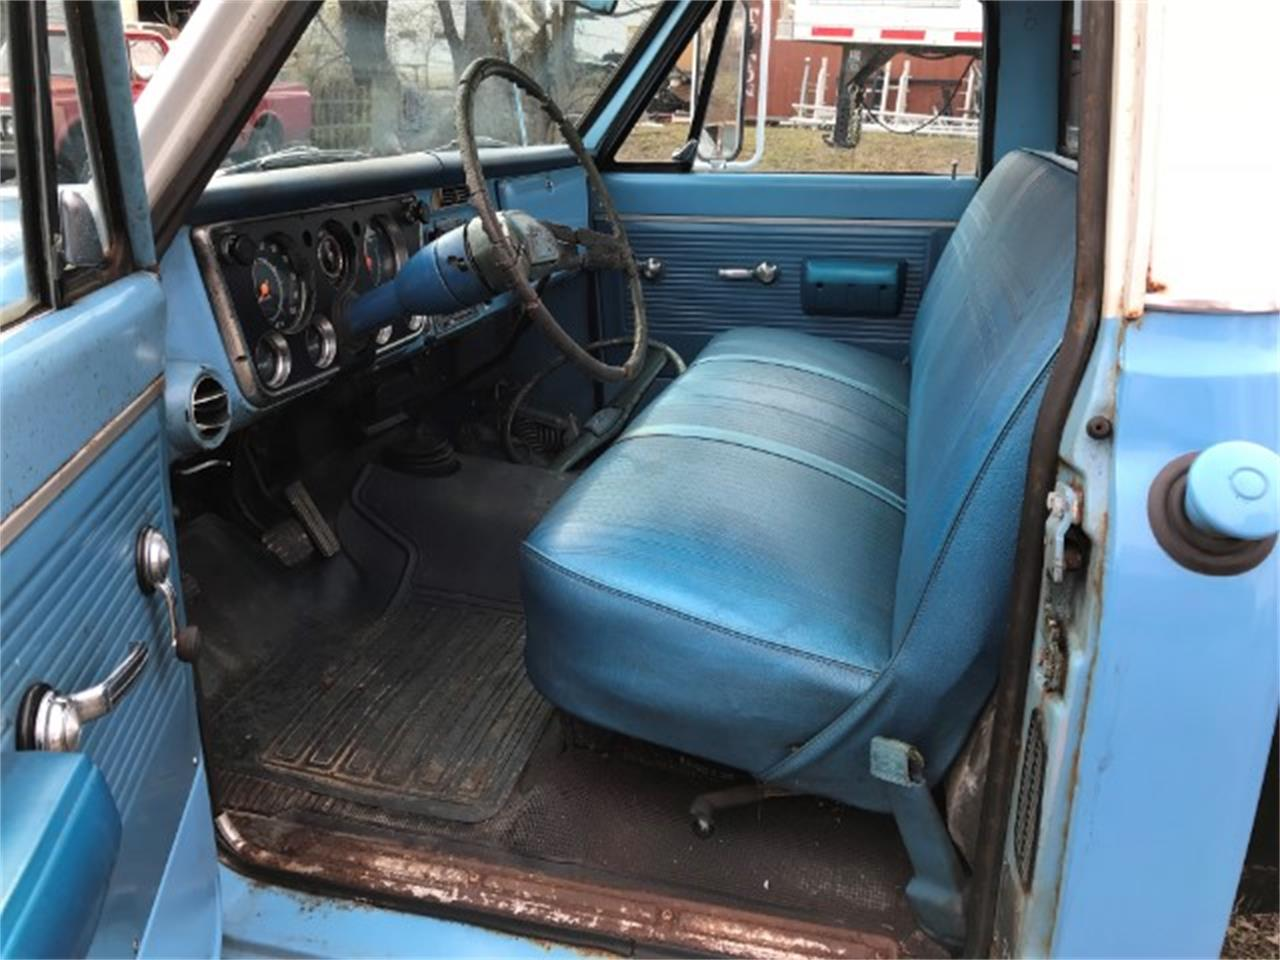 1971 Chevrolet 1 Ton Truck for sale in Harpers Ferry, WV – photo 12